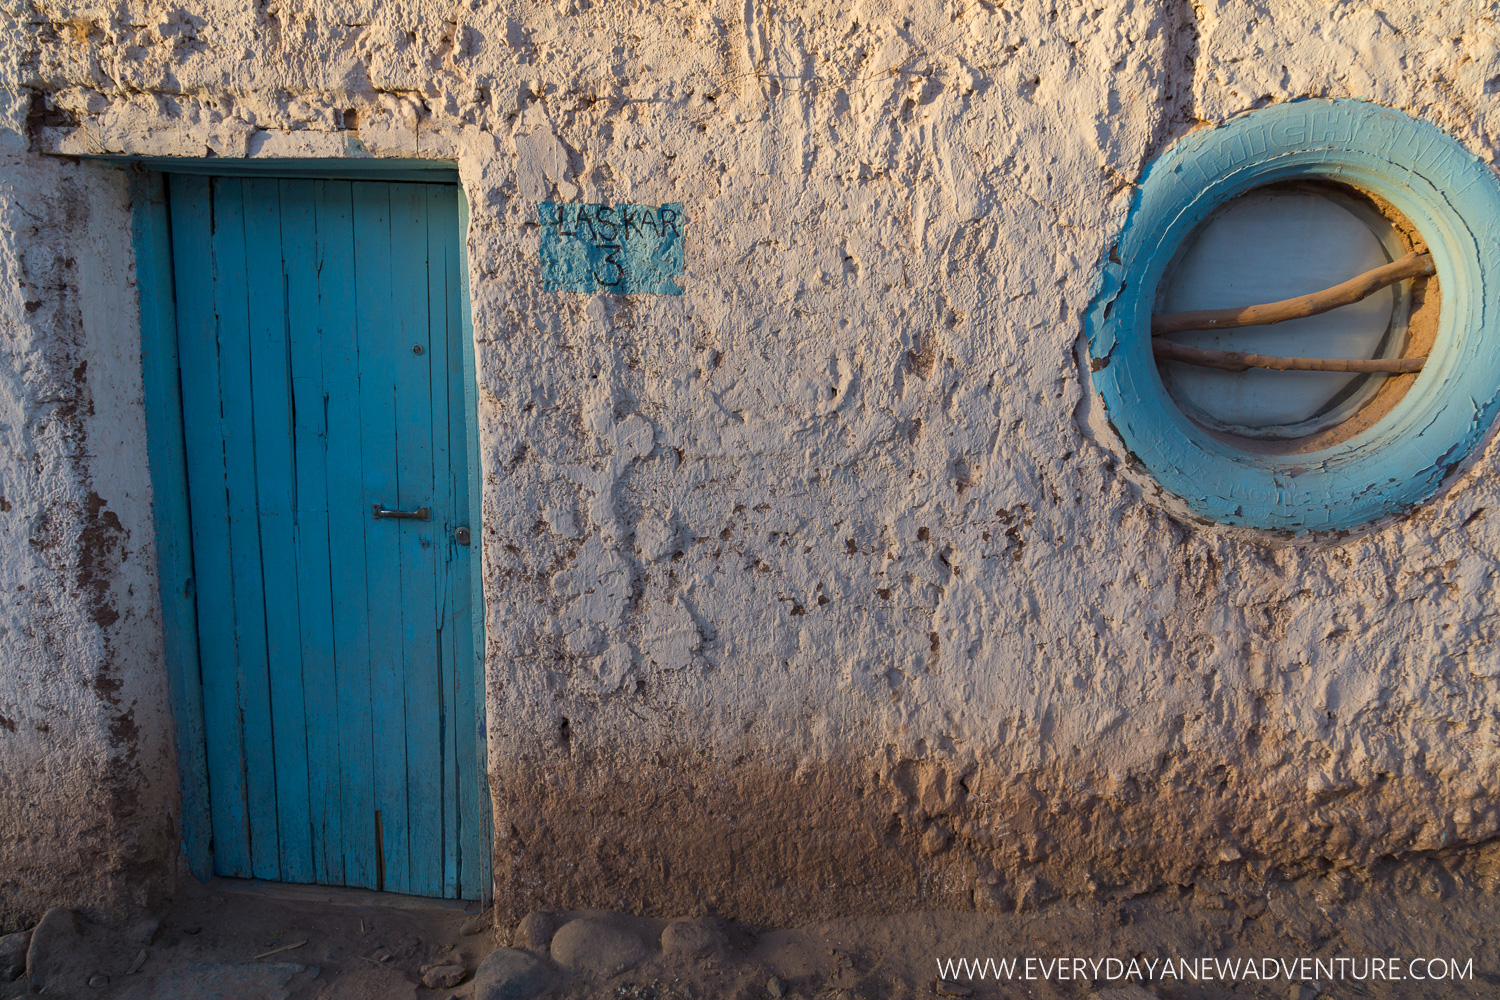 Mud walls and a window made out of a Michelin tire -a standard home in San Pedro de Atacama.